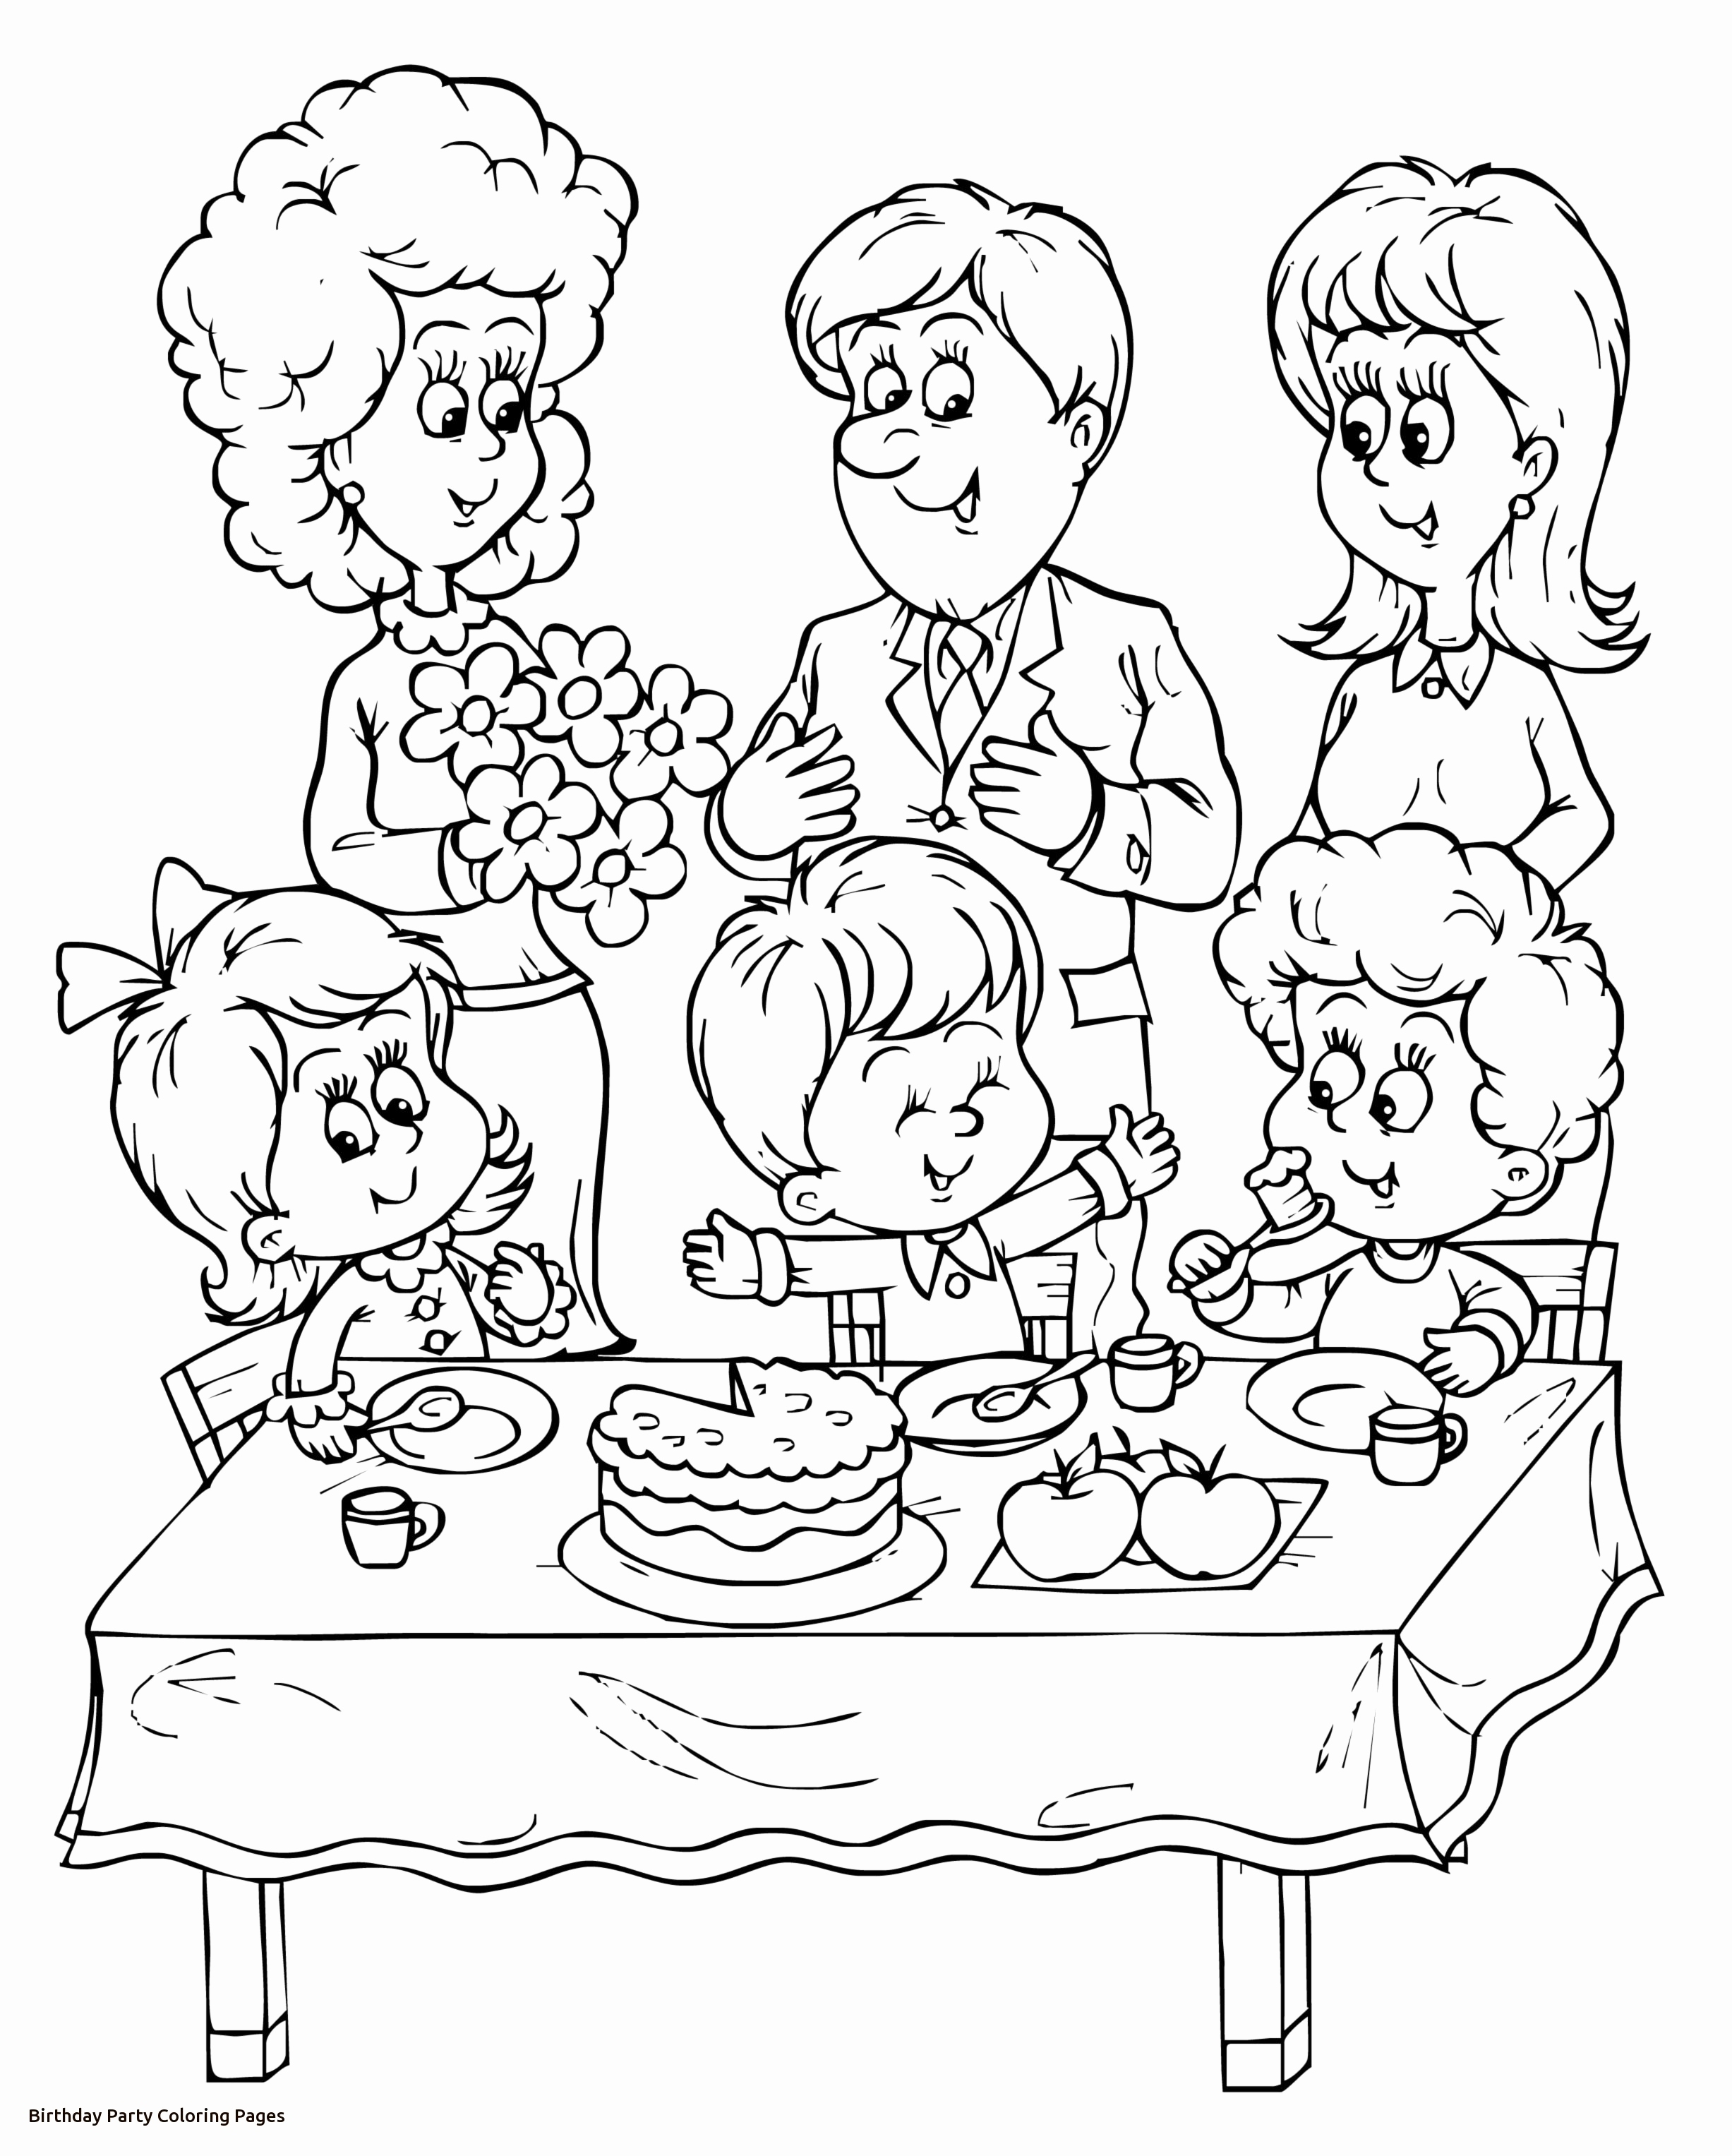 birthday party coloring sheets ; happy-birthday-coloring-pages-new-birthday-party-coloring-pages-of-happy-birthday-coloring-pages